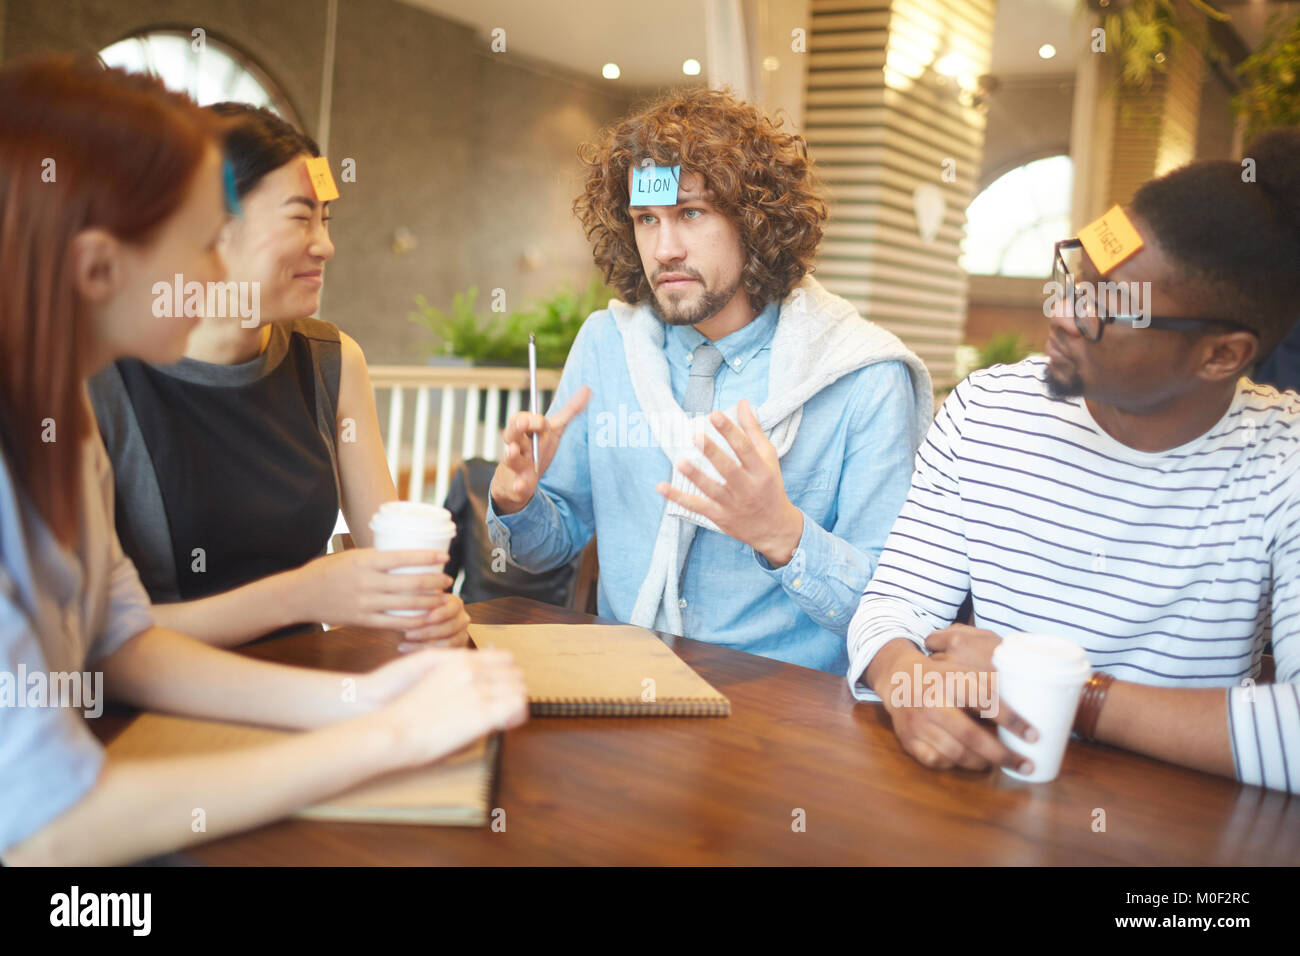 Funny meeting - Stock Image